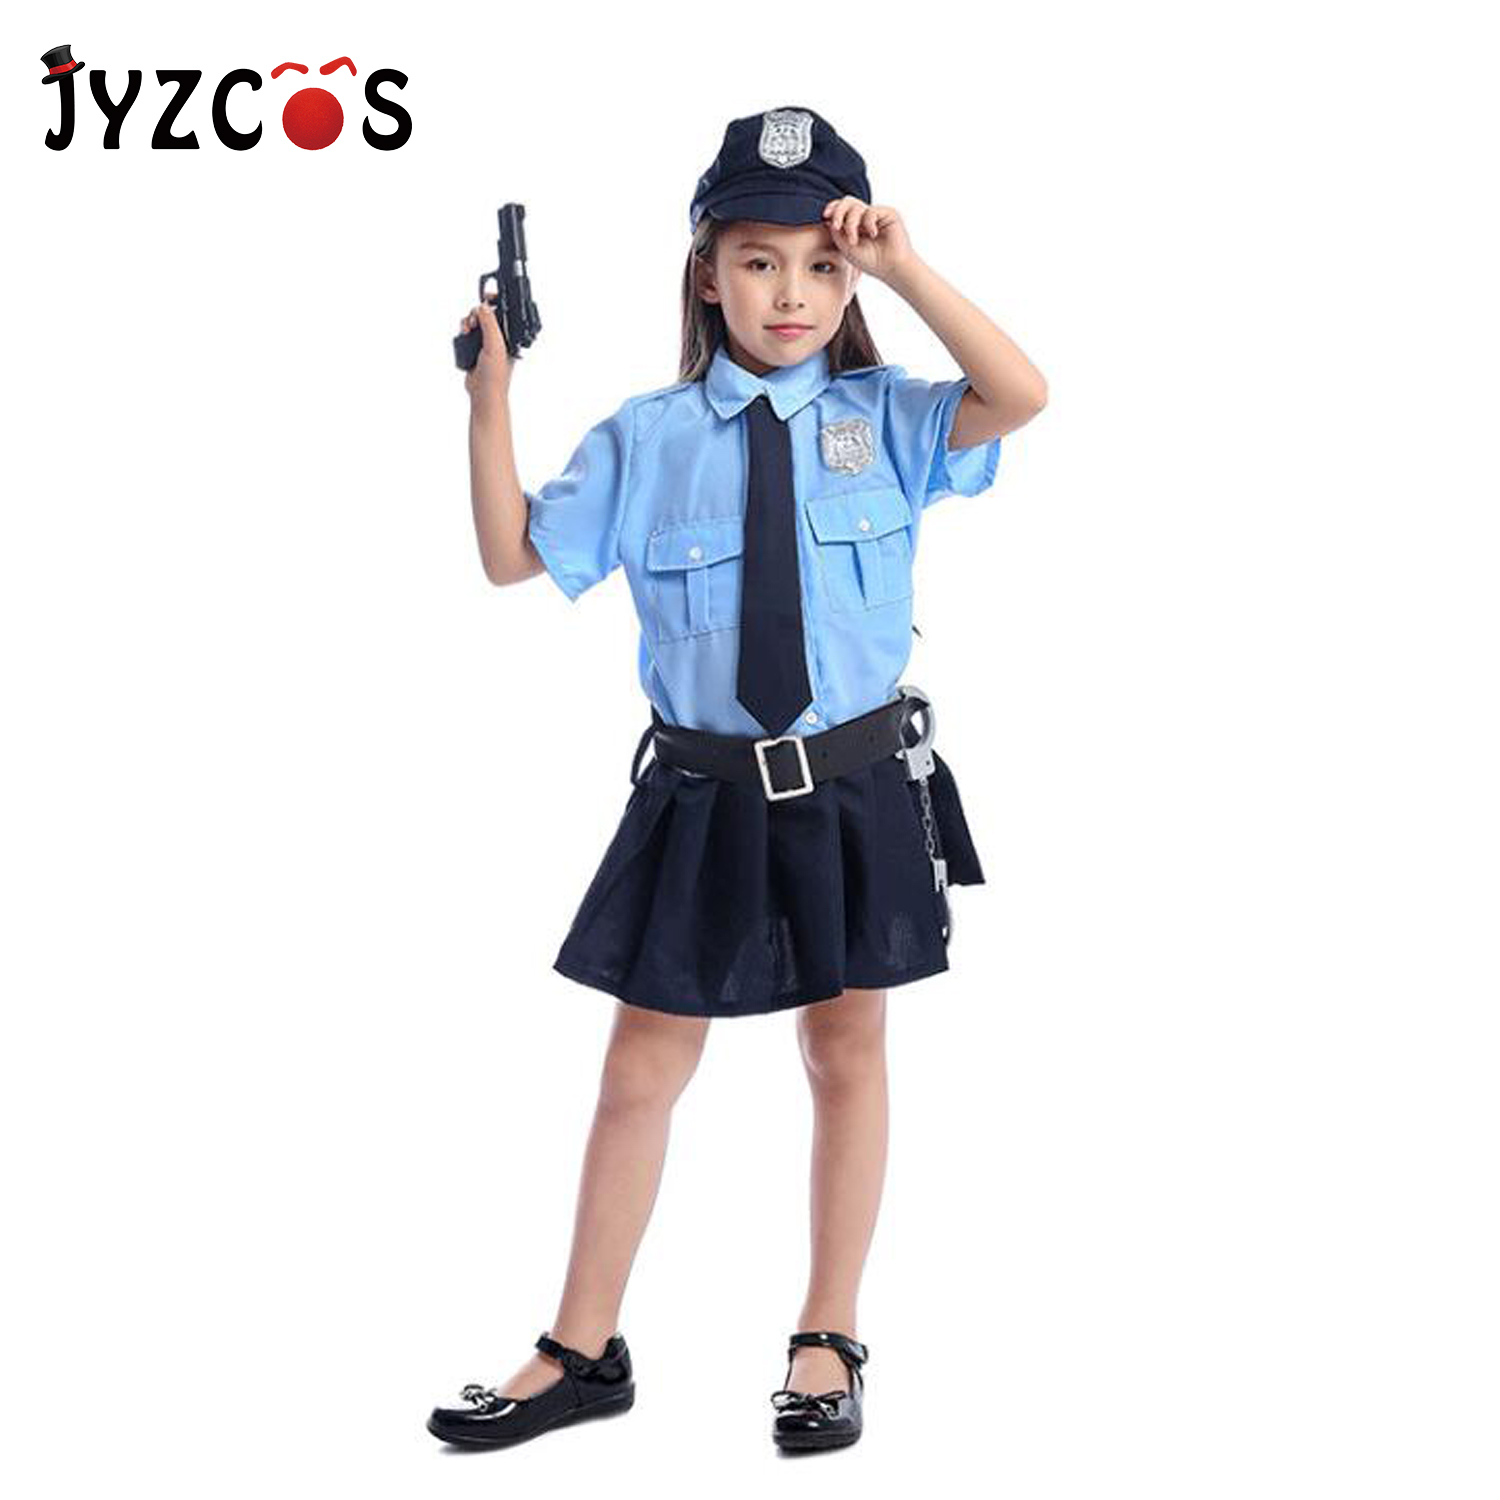 JYZCOS Cute Girls Tiny Cop Police Officer Playtime Cosplay Uniform Kids Coolest Suits Halloween Costume Children Cosplay Clothes